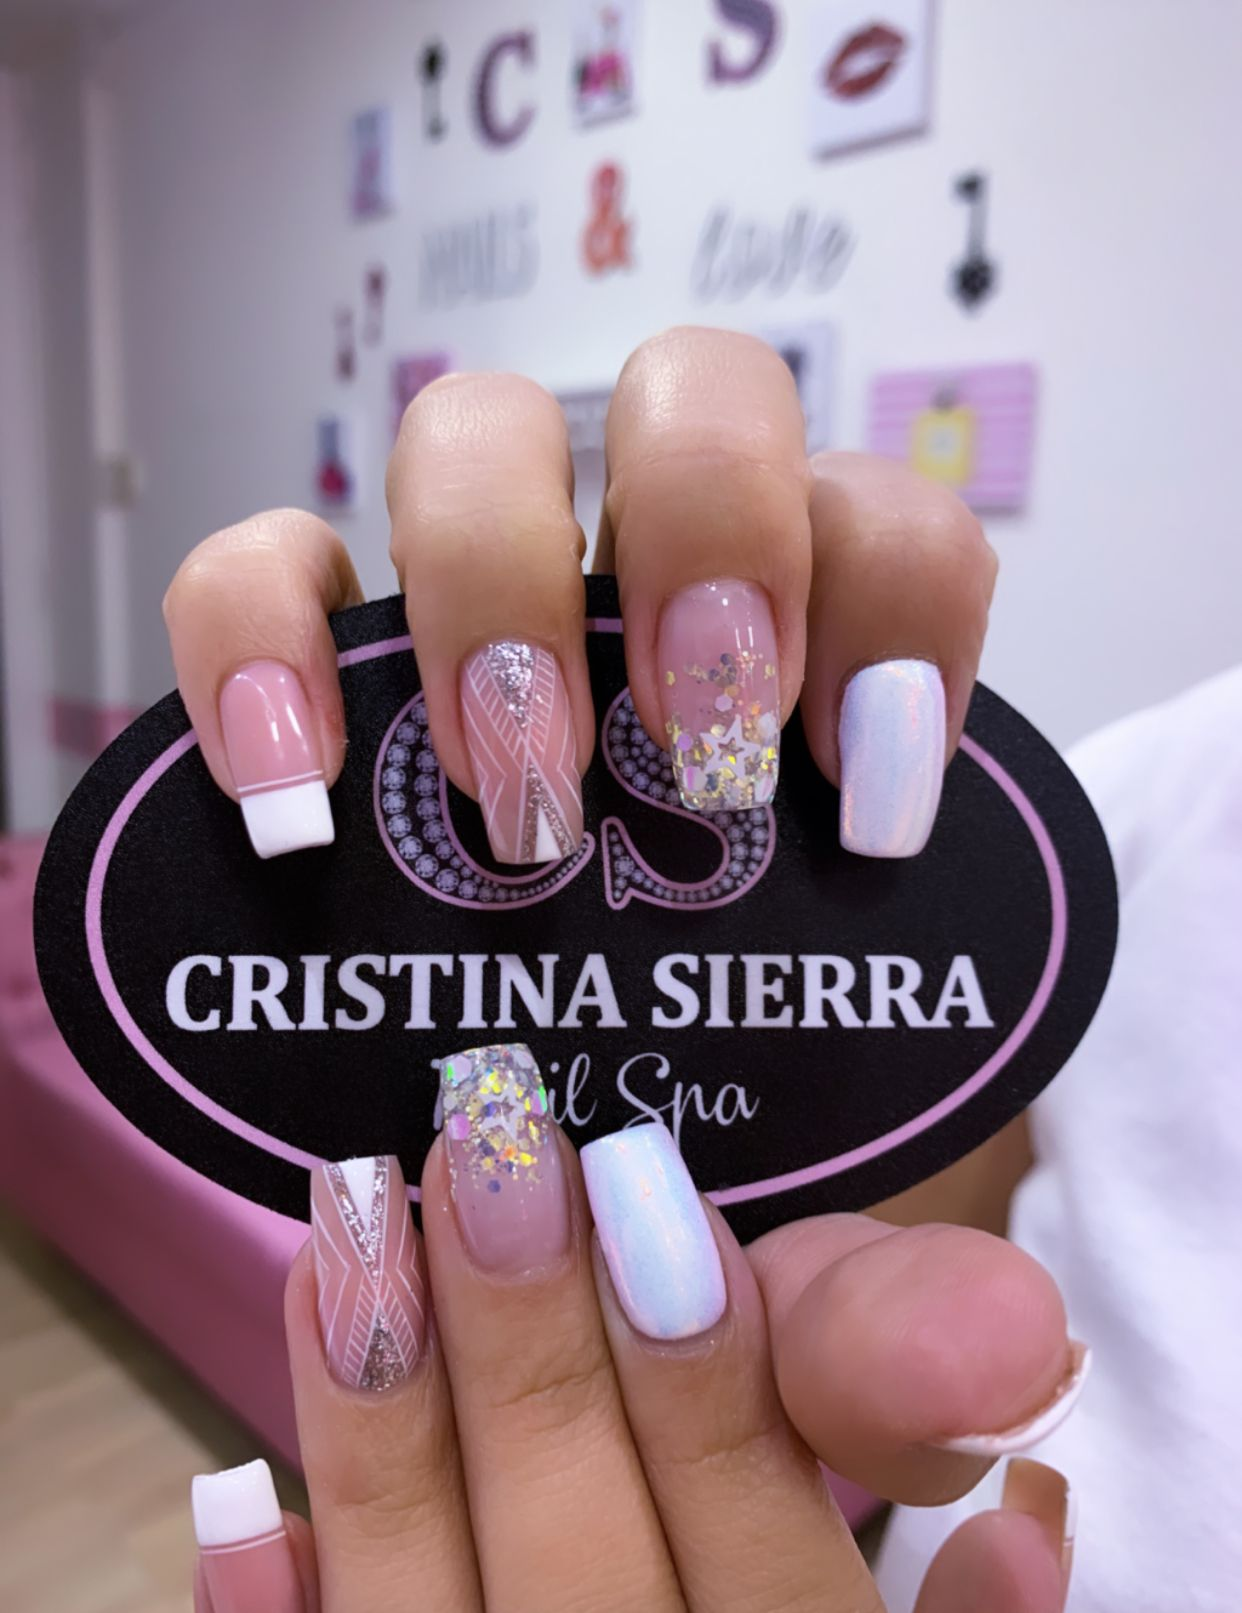 Cristina Sierra Nail Spa Sedes Disponibles Laureles